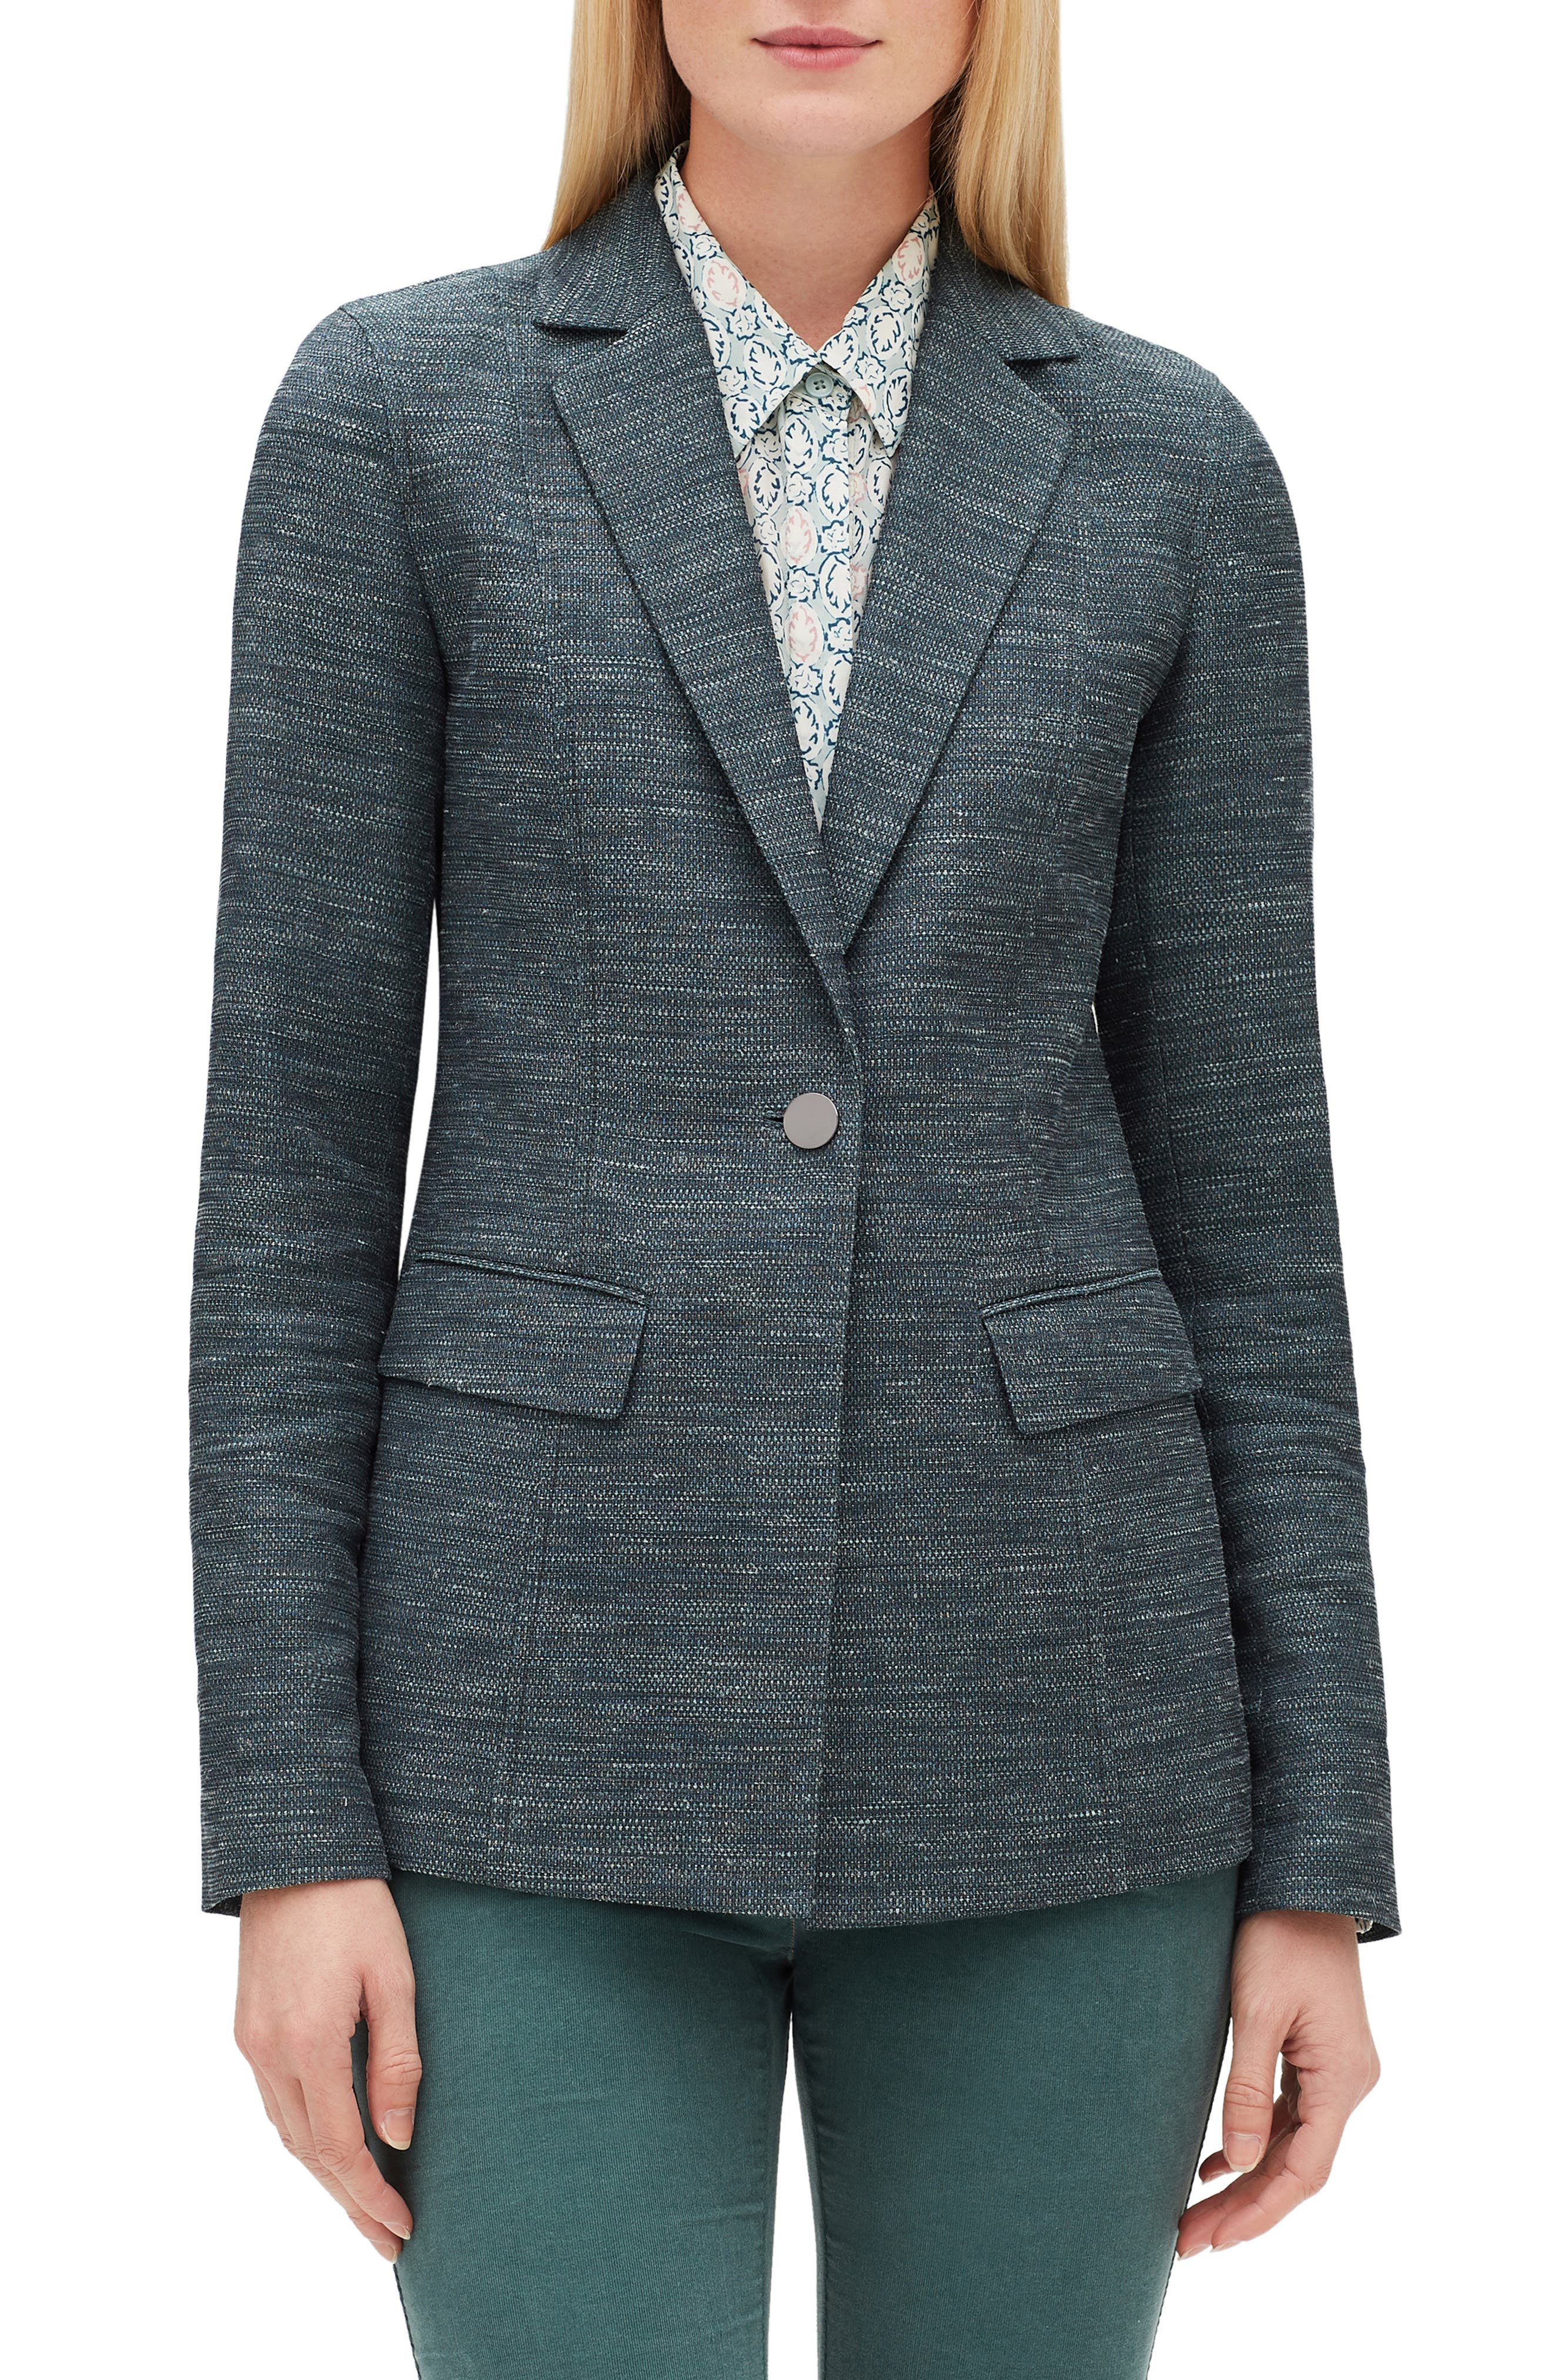 Marris Mayfair Weave Jacket,                             Main thumbnail 1, color,                             EMPRESS TEAL MULTI